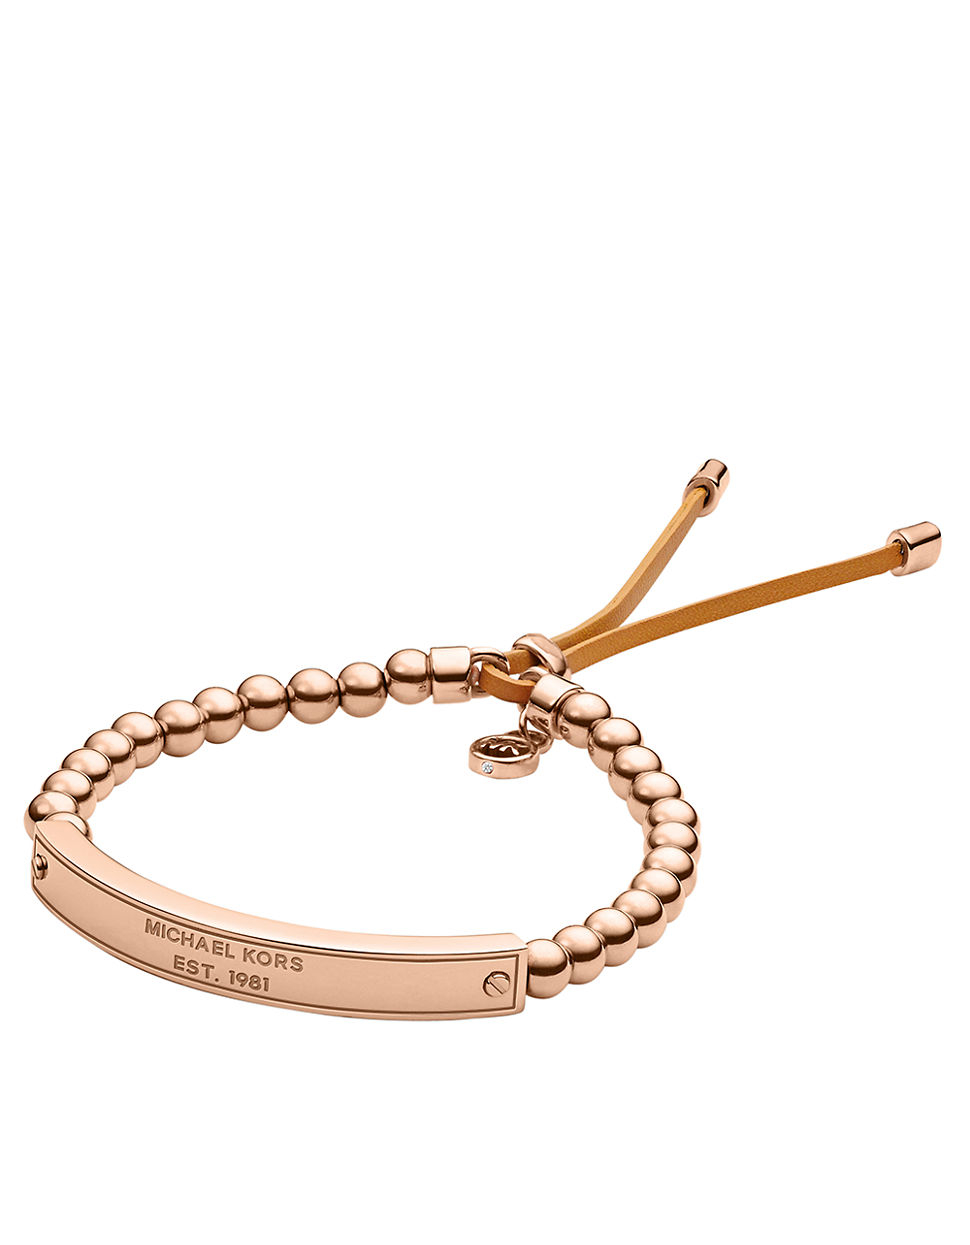 michael kors rose goldtone bead and logo plaque stretch bracelet in metallic lyst. Black Bedroom Furniture Sets. Home Design Ideas